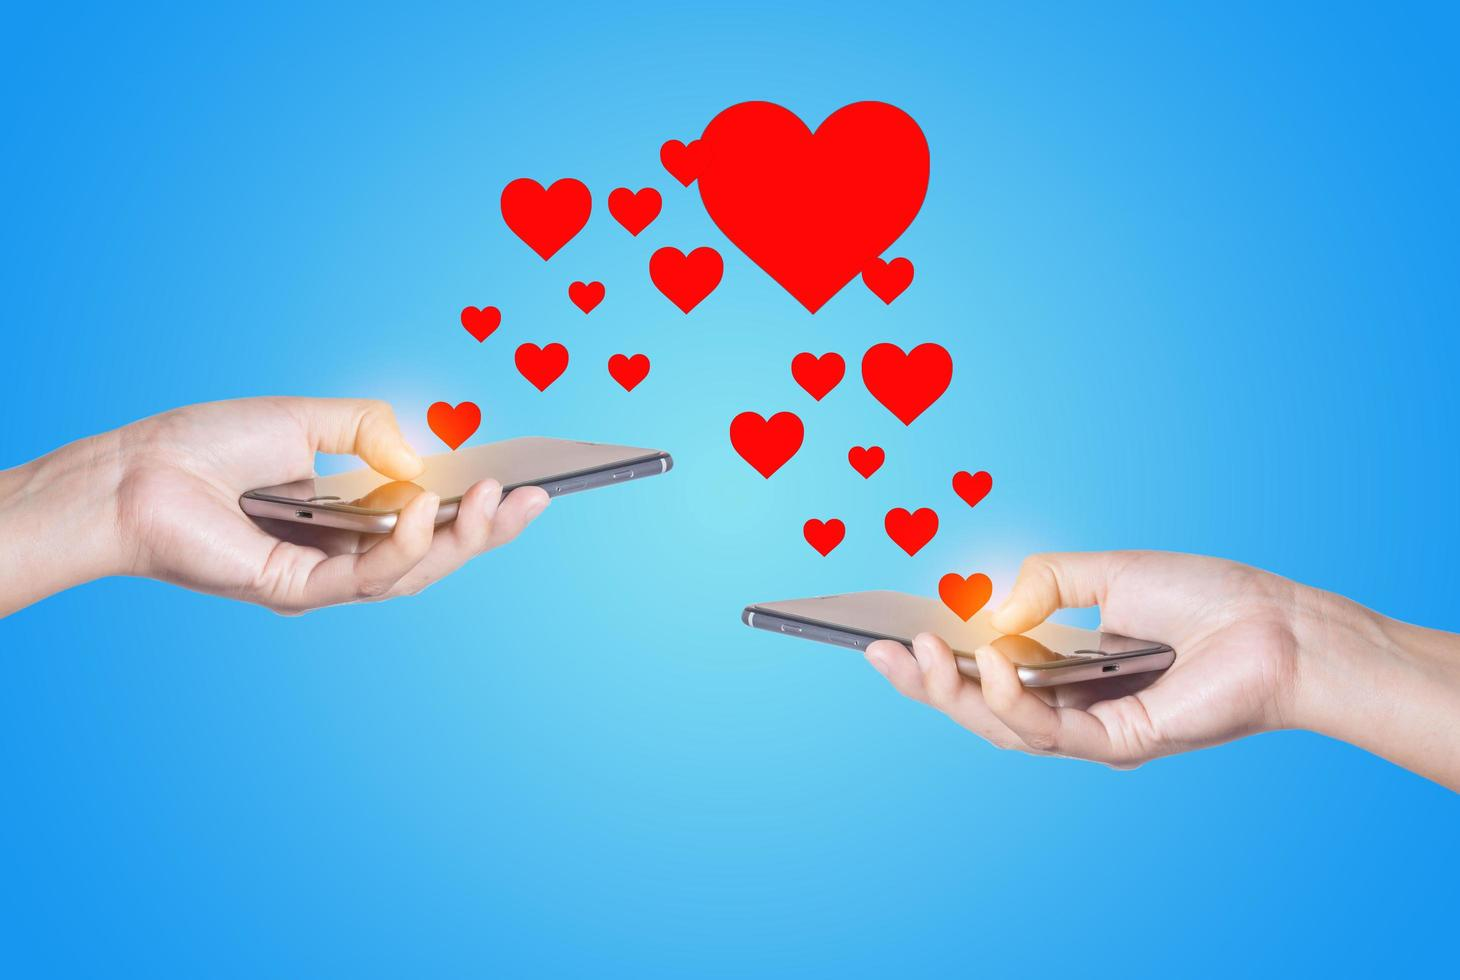 Hands with mobile phone and hearts photo